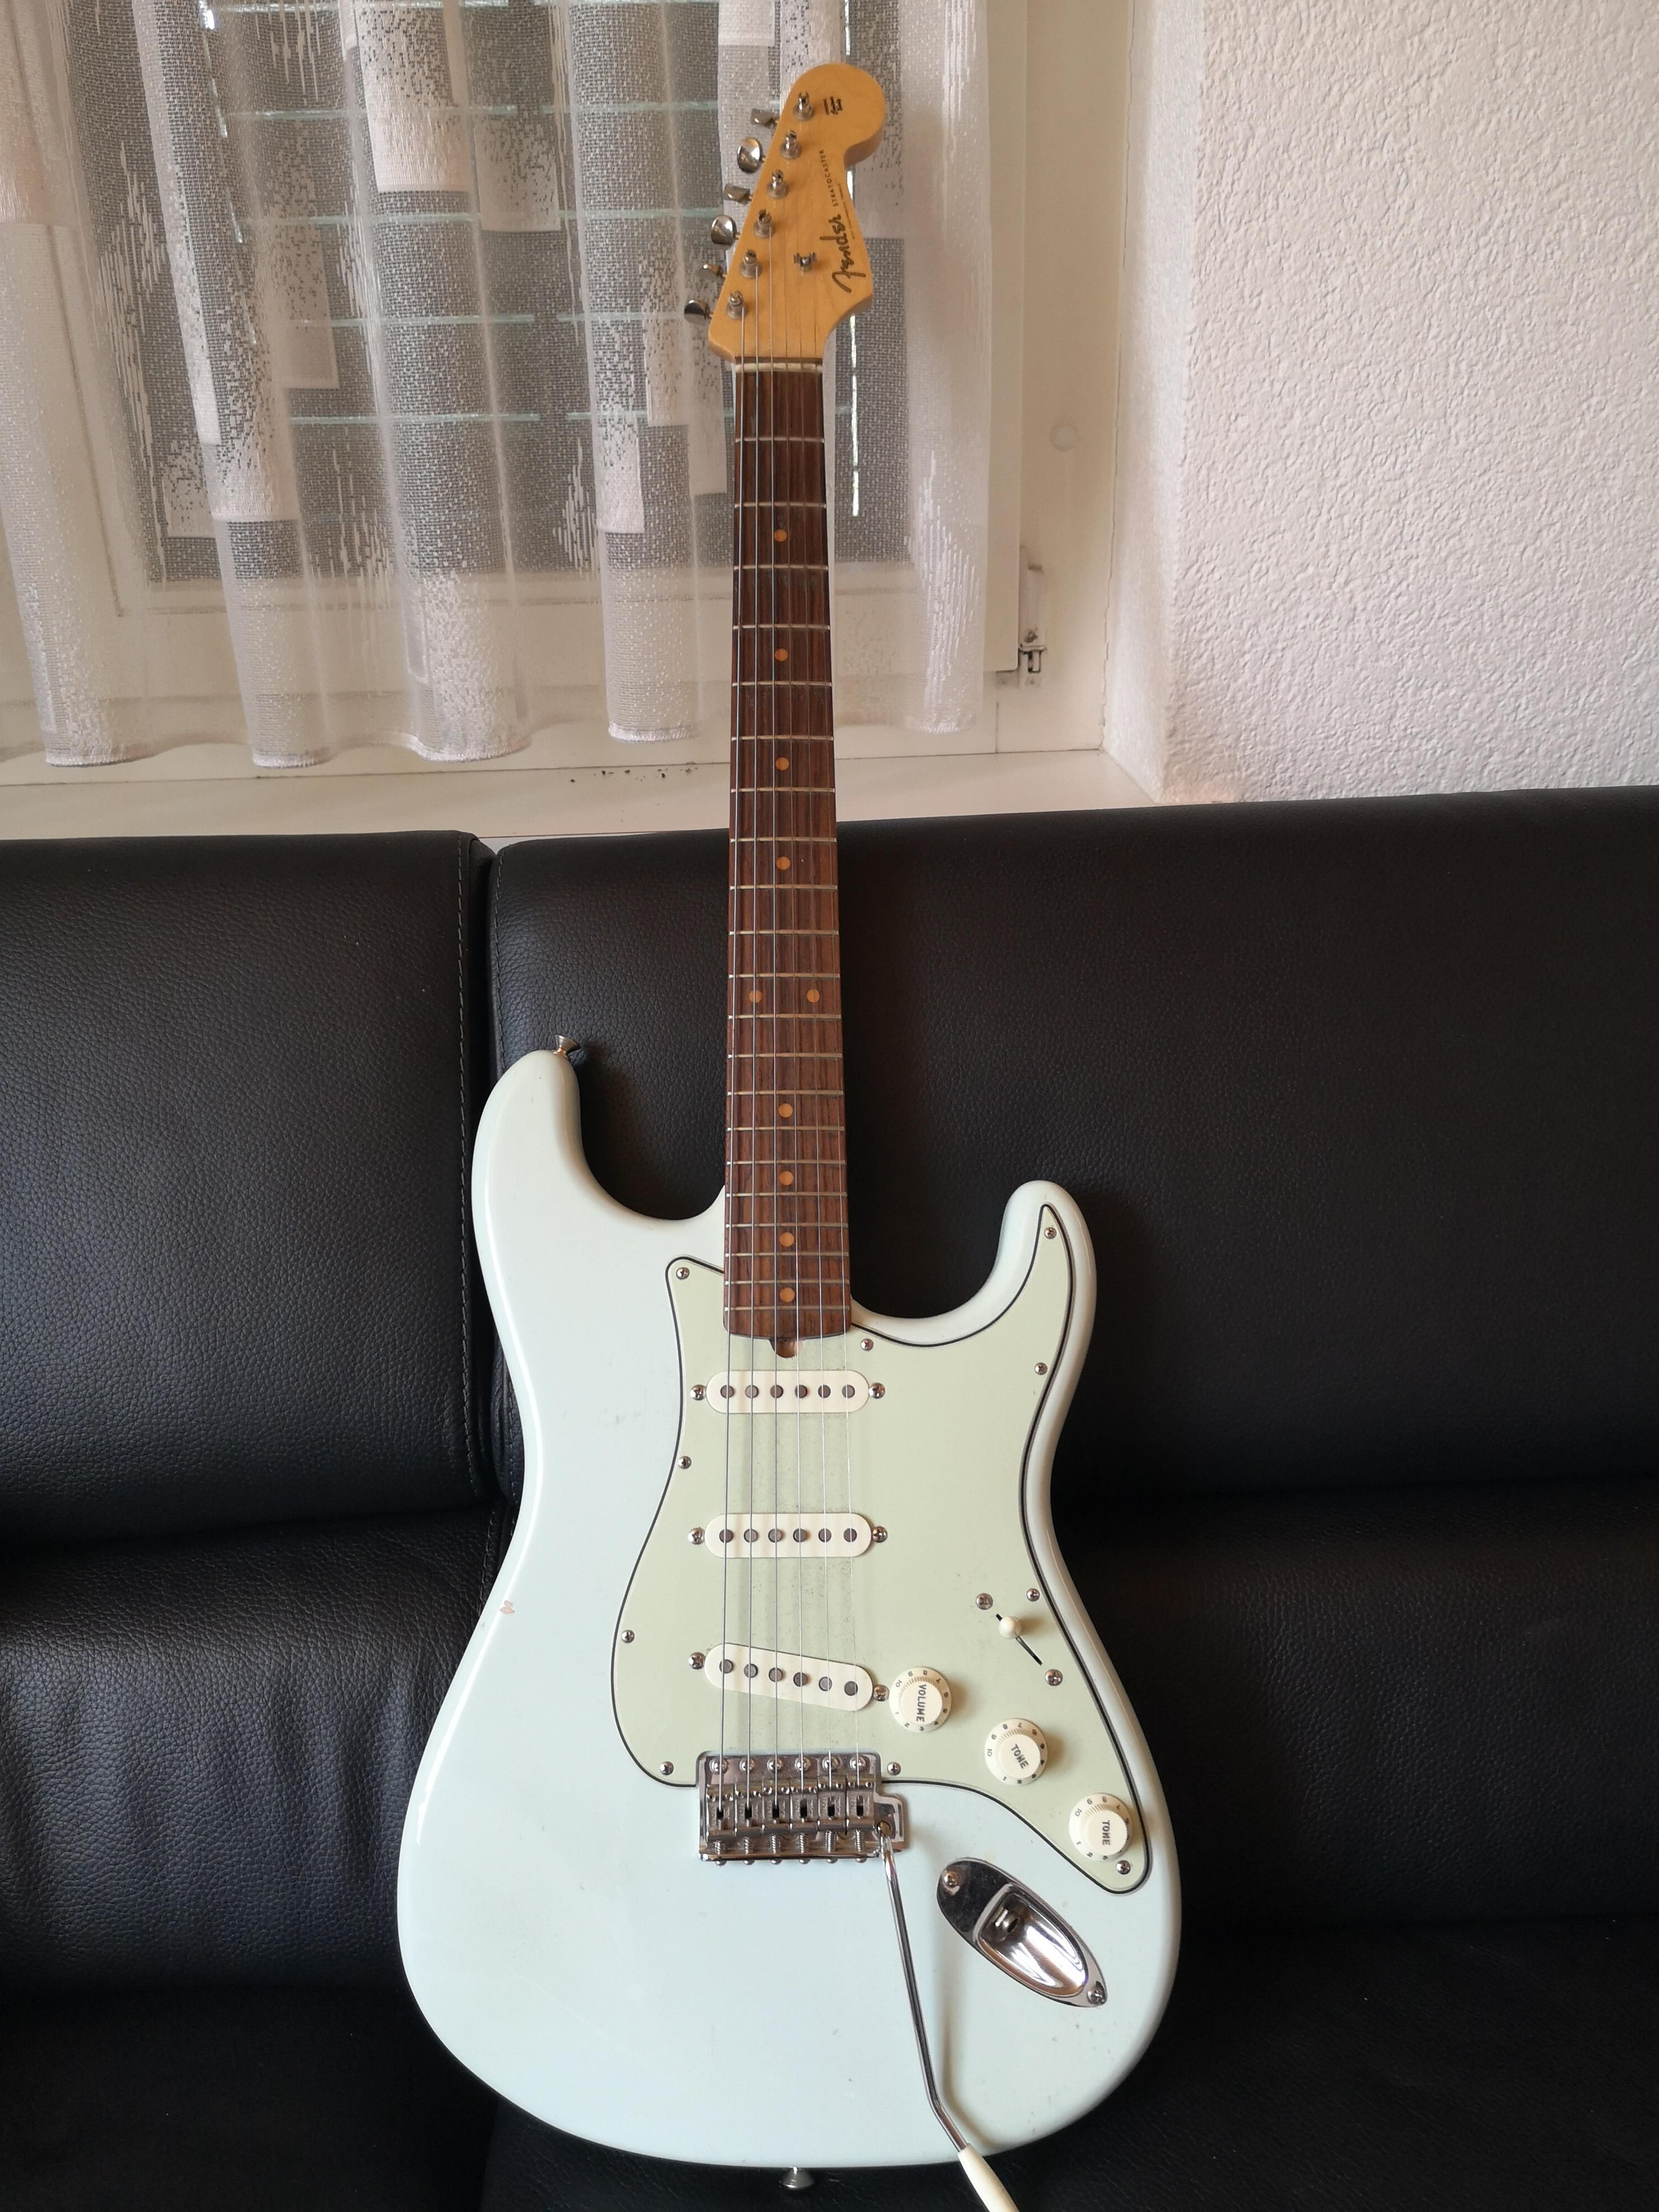 This Is My First Pic I Put On Reddit My Beautyfull Strat One Pic Pics Put On